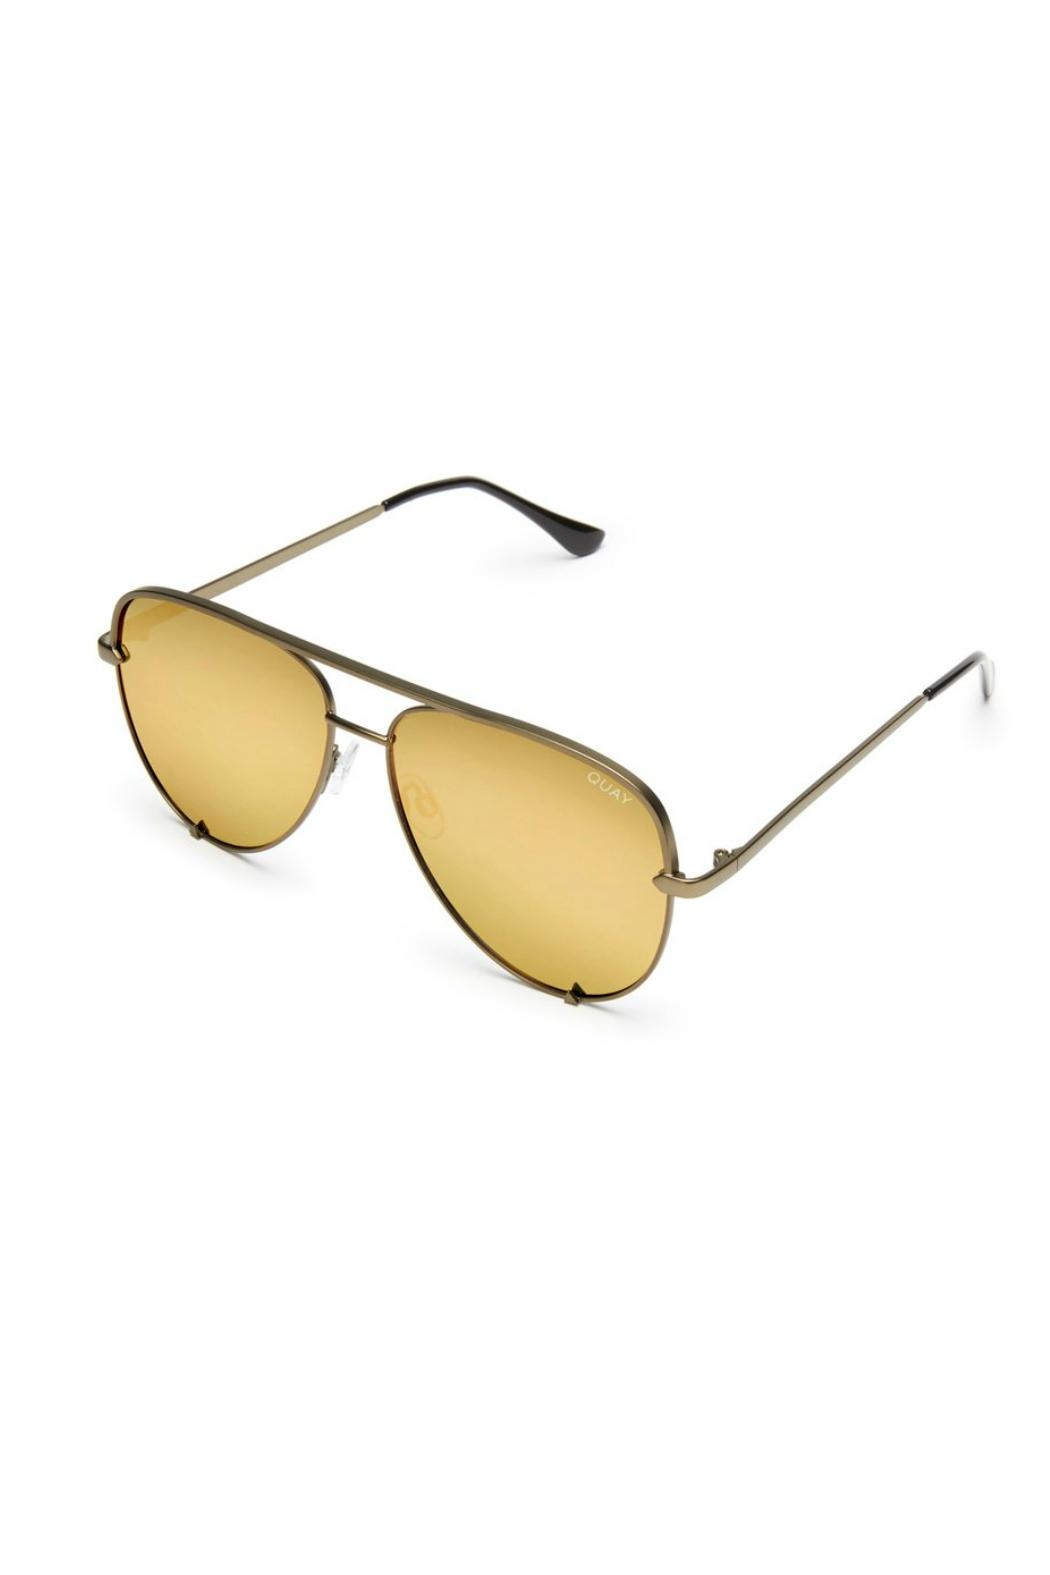 3df07bf6cb Quay Australia High Key Sunnies from Texas by POE and Arrows